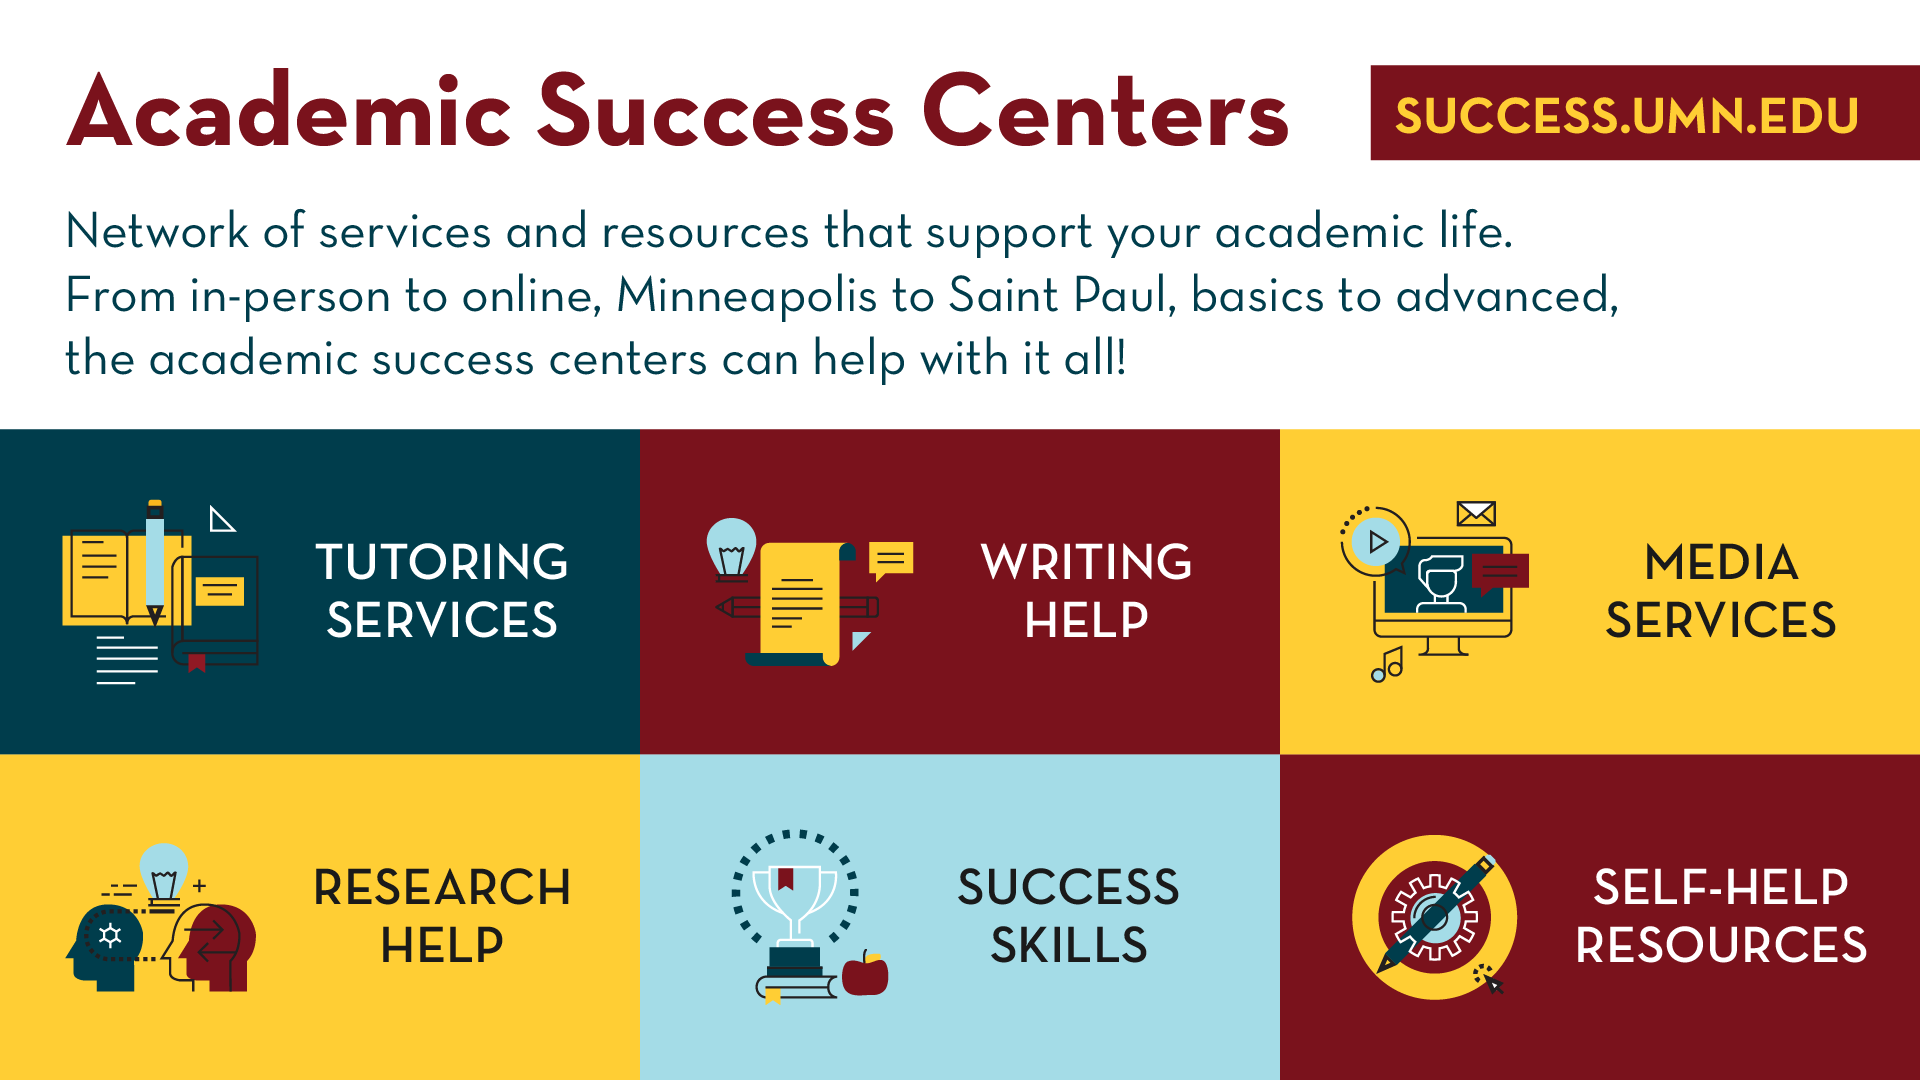 Academic Success Centers Promo Slide